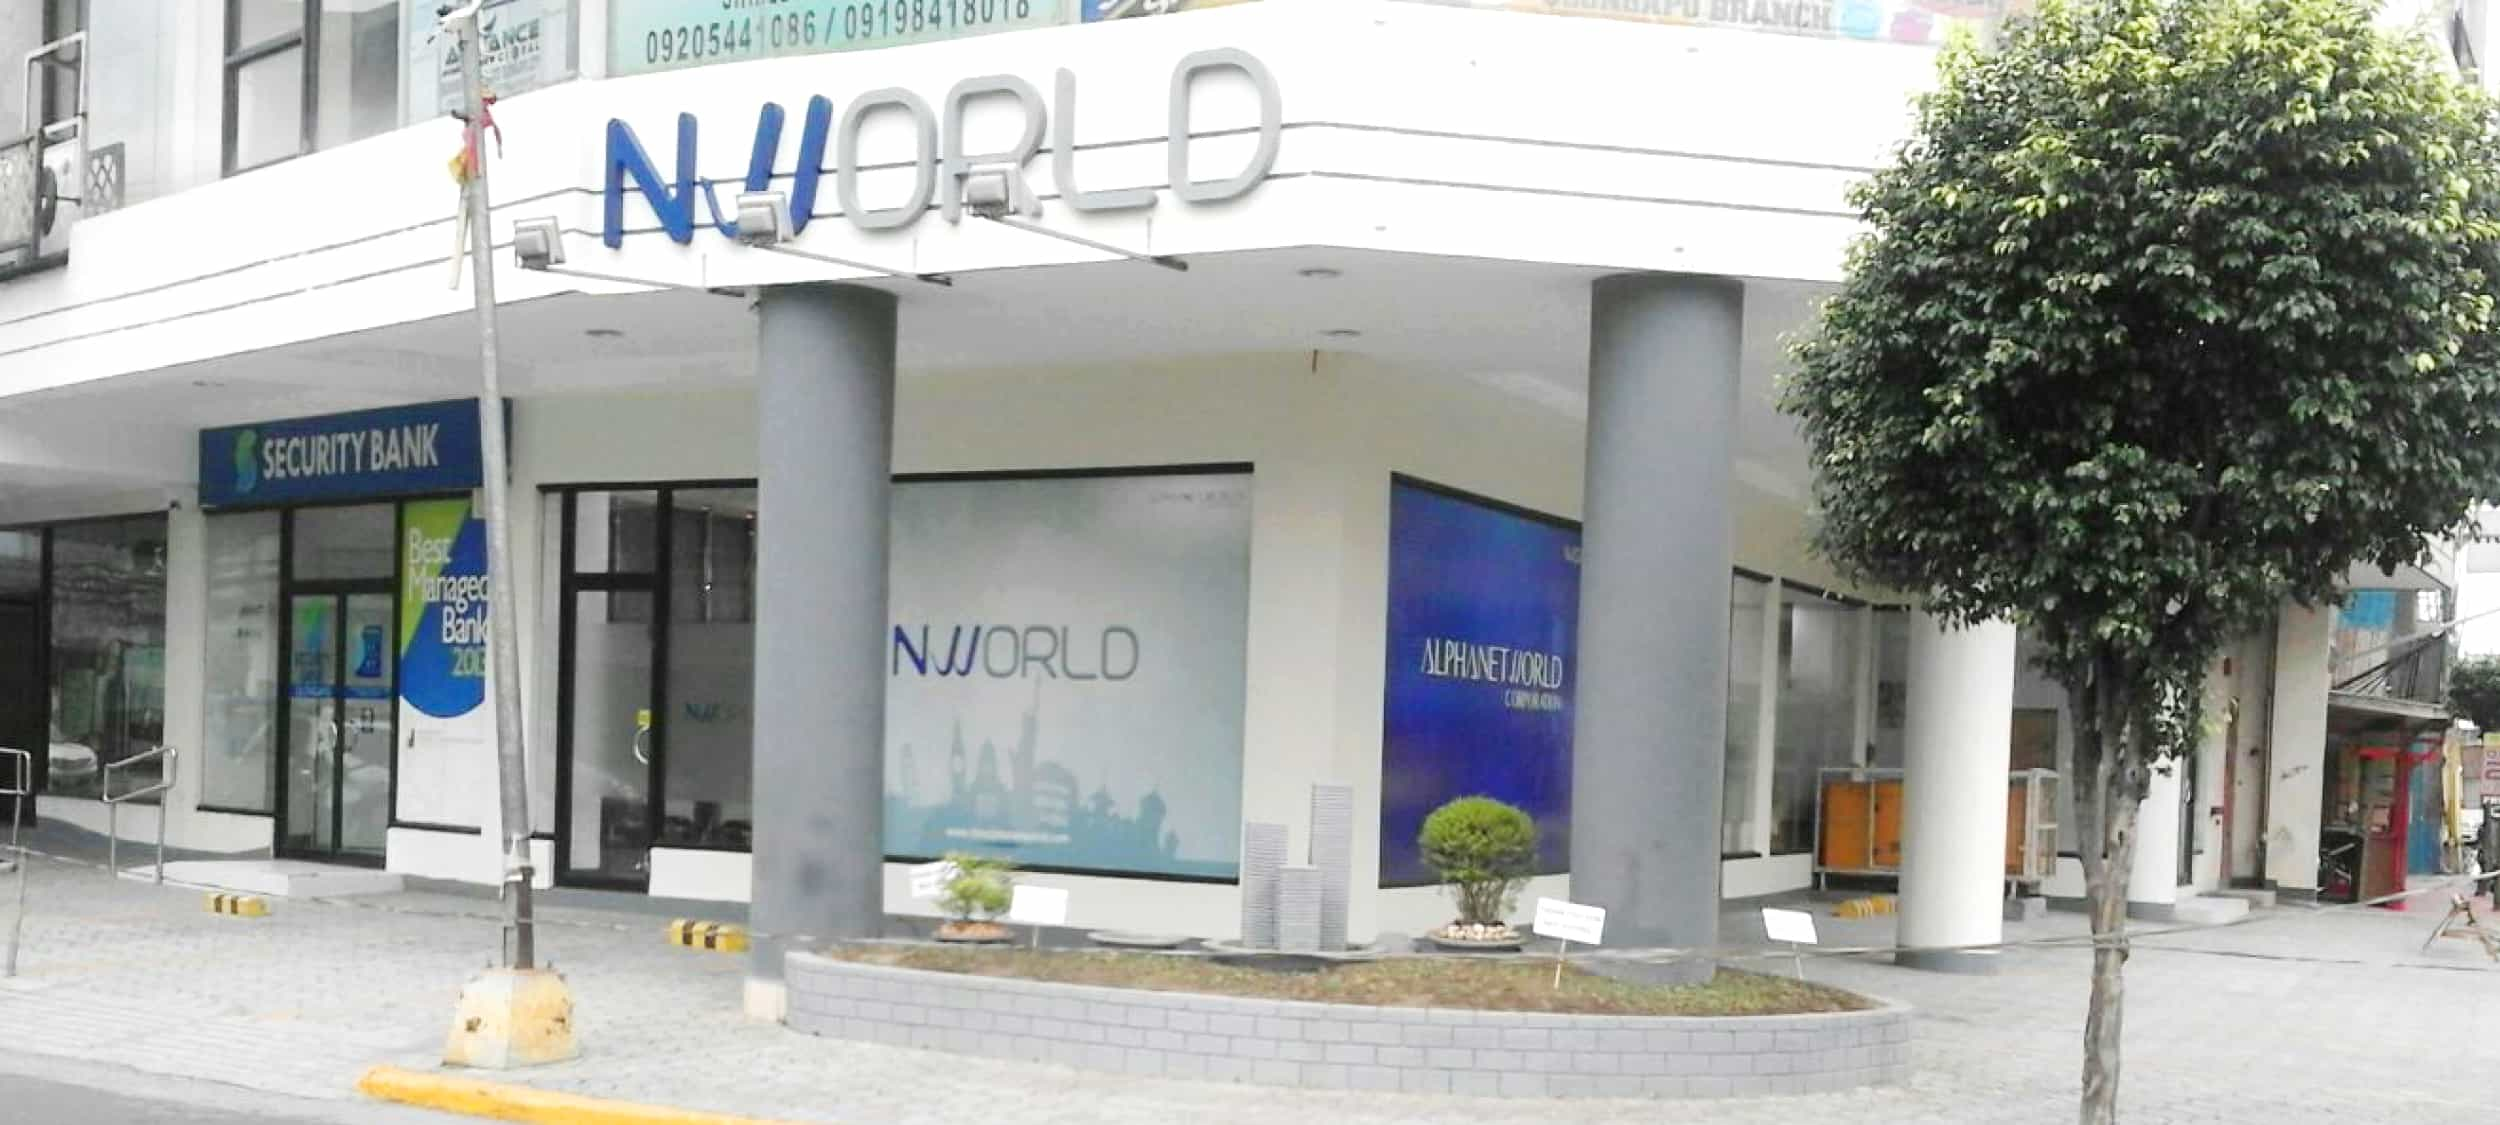 NWORLD Olongapo Branch